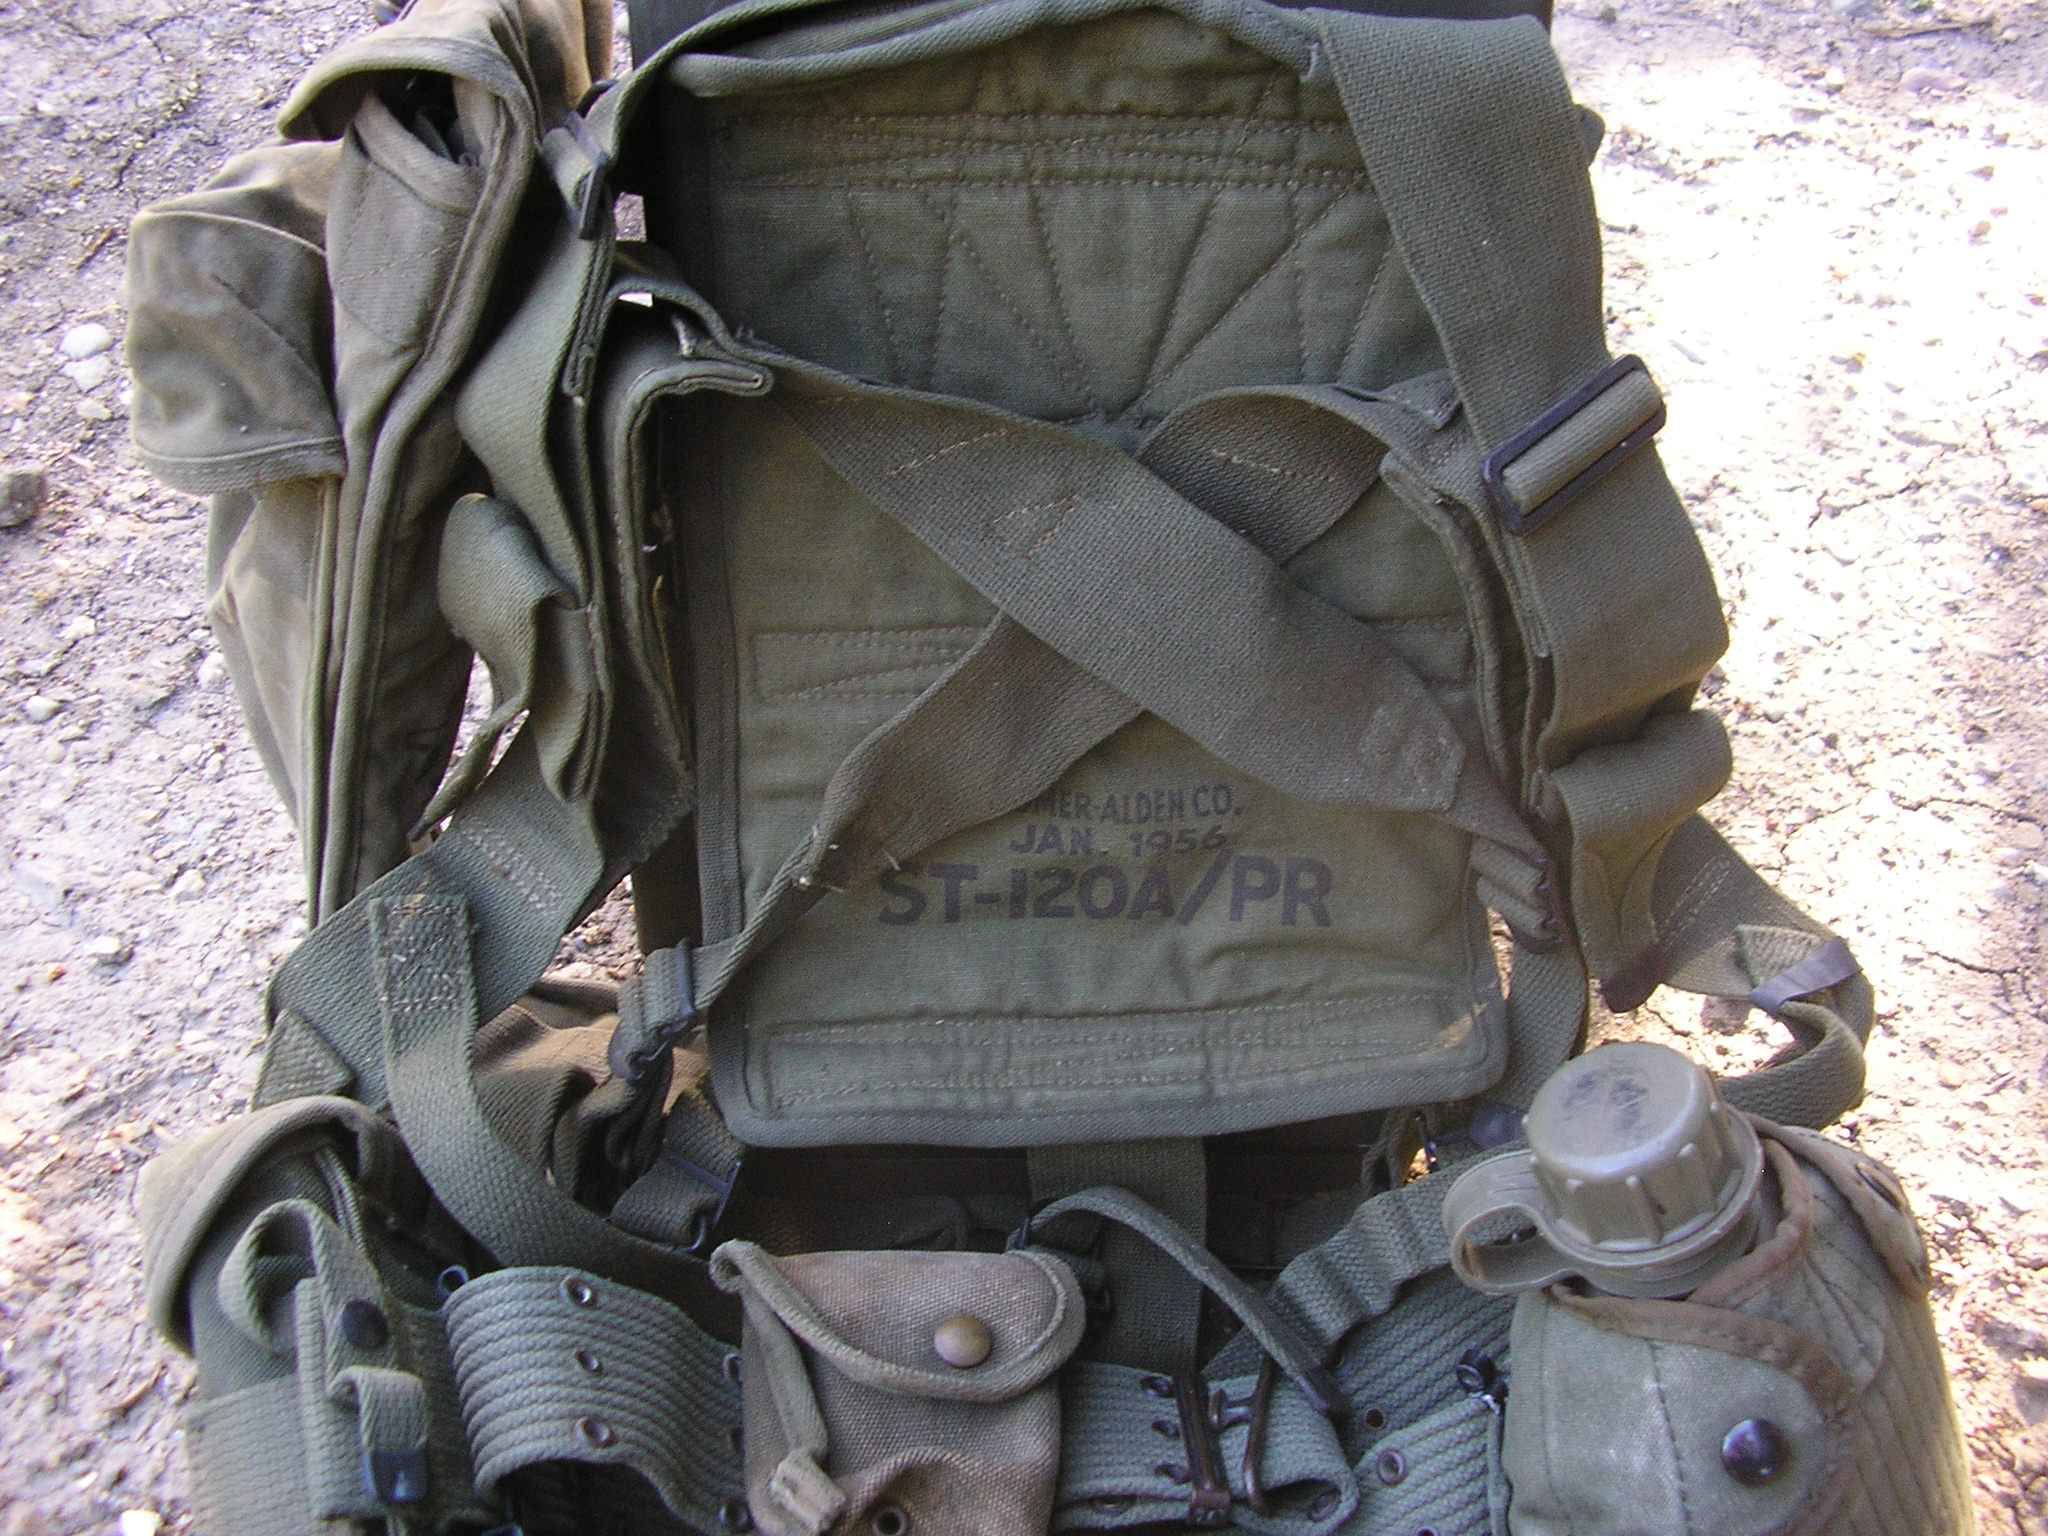 PRC-10 Radio in ST-120A/PR Carrying Harness